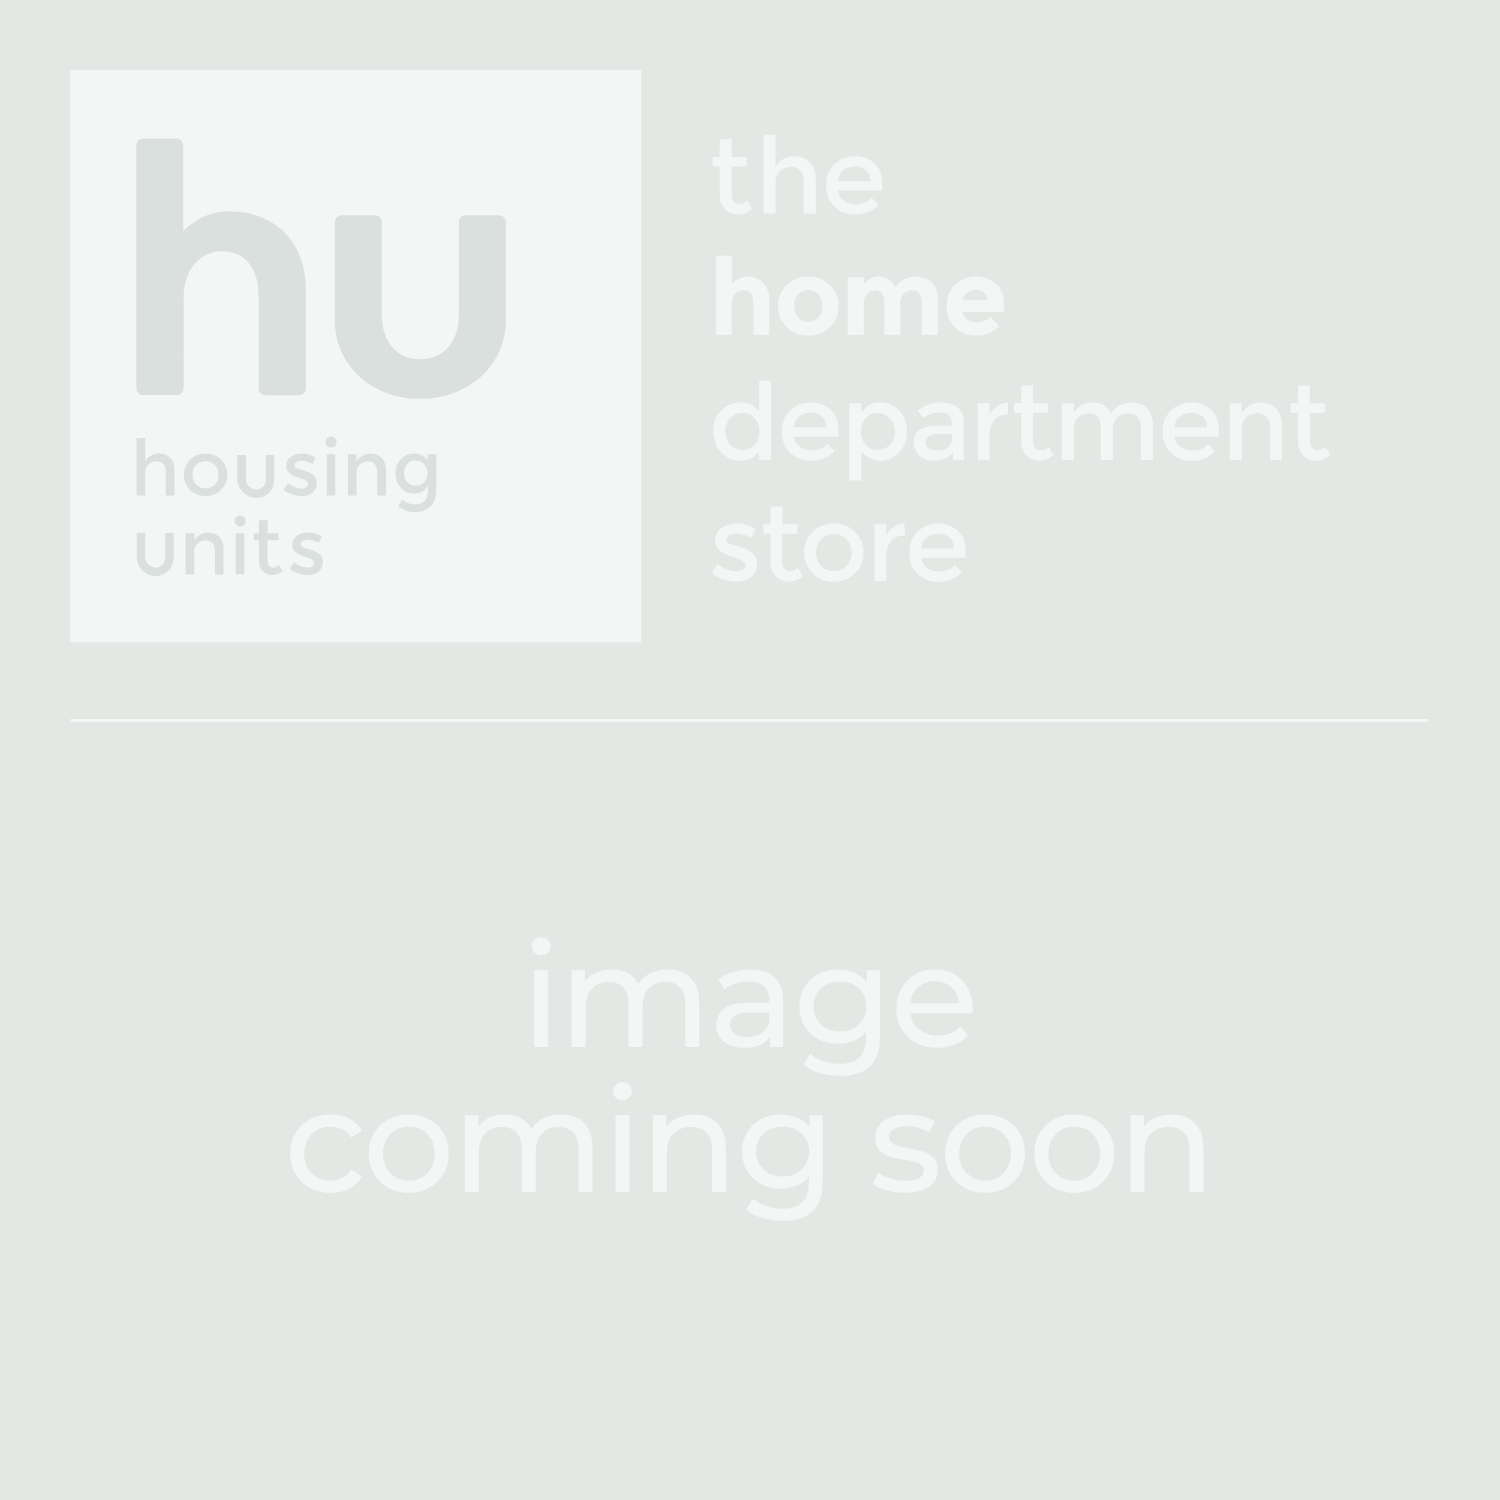 Celine Crystal & Chrome 5 Light Semi Flush Ceiling Light | Housing Units